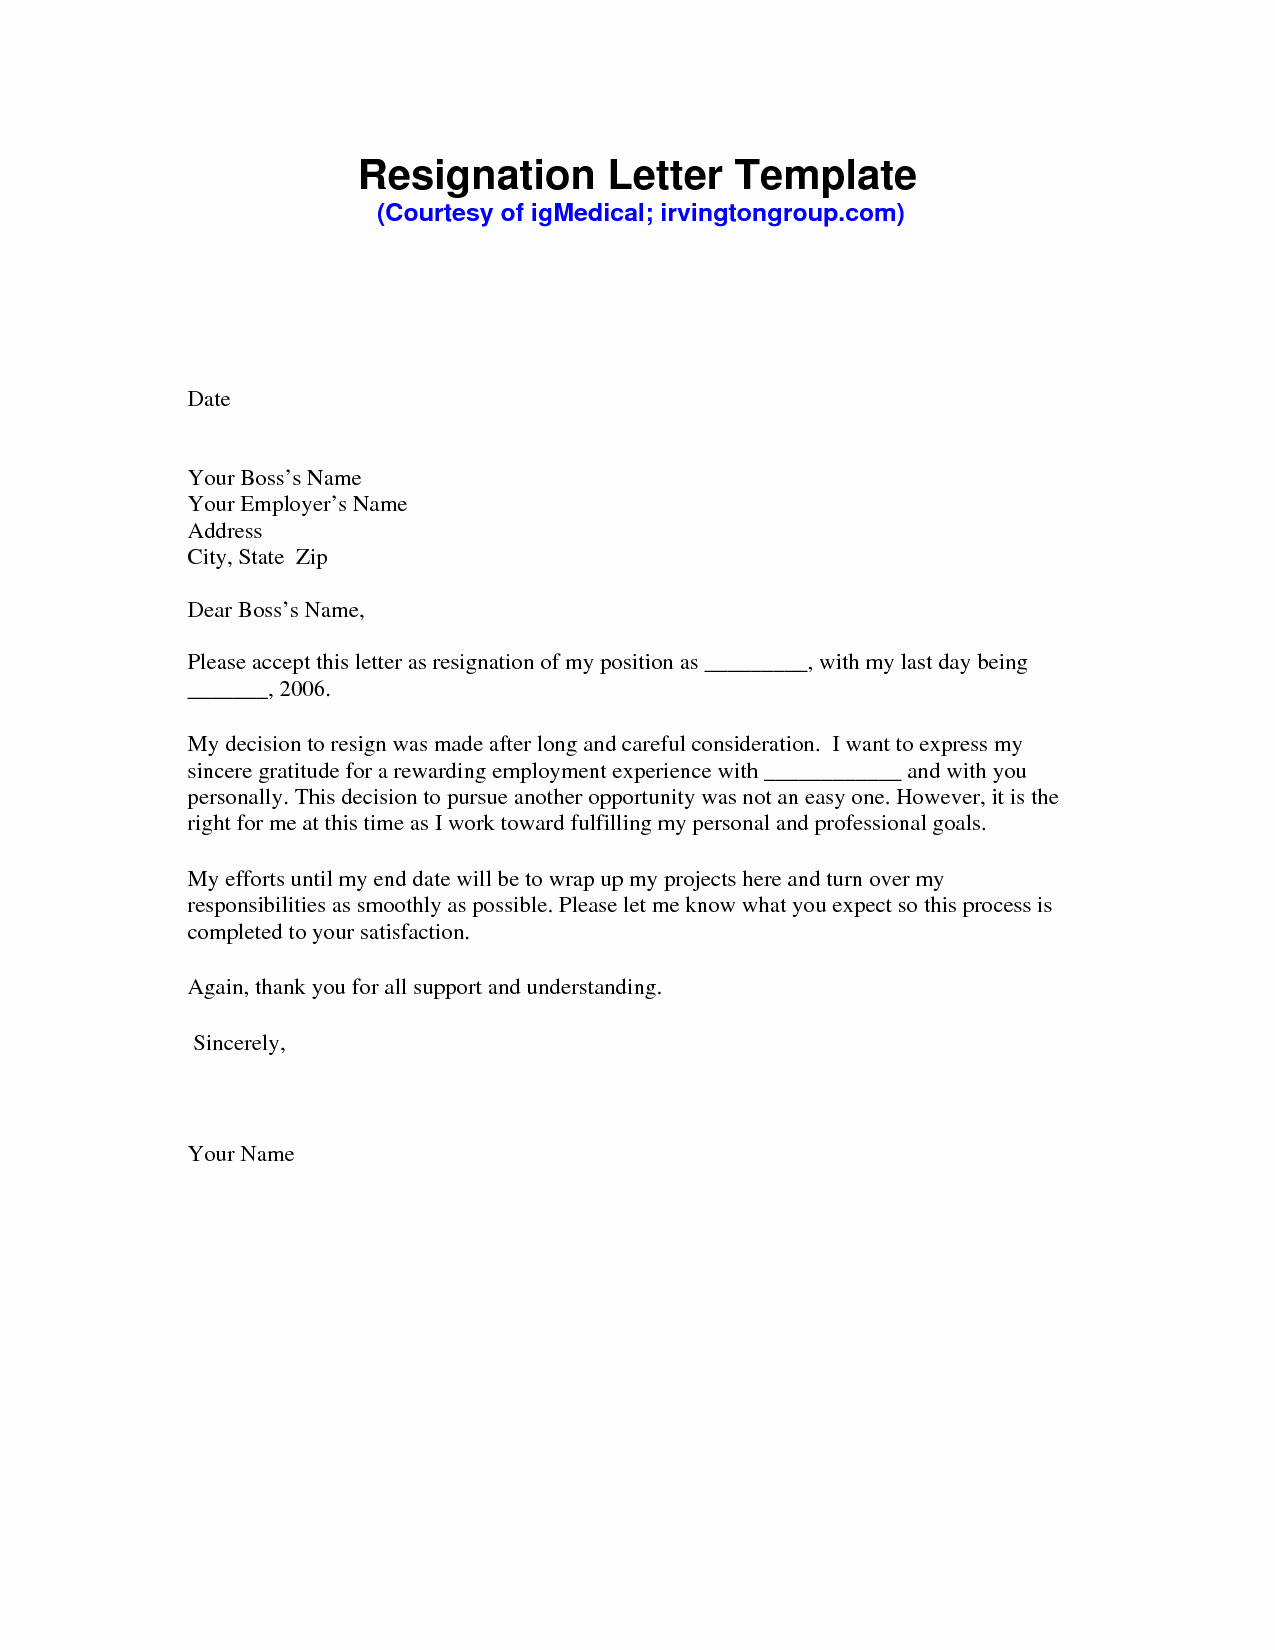 Letter Of Resignation Template Word Fresh Resignation Letter Sample Pdf